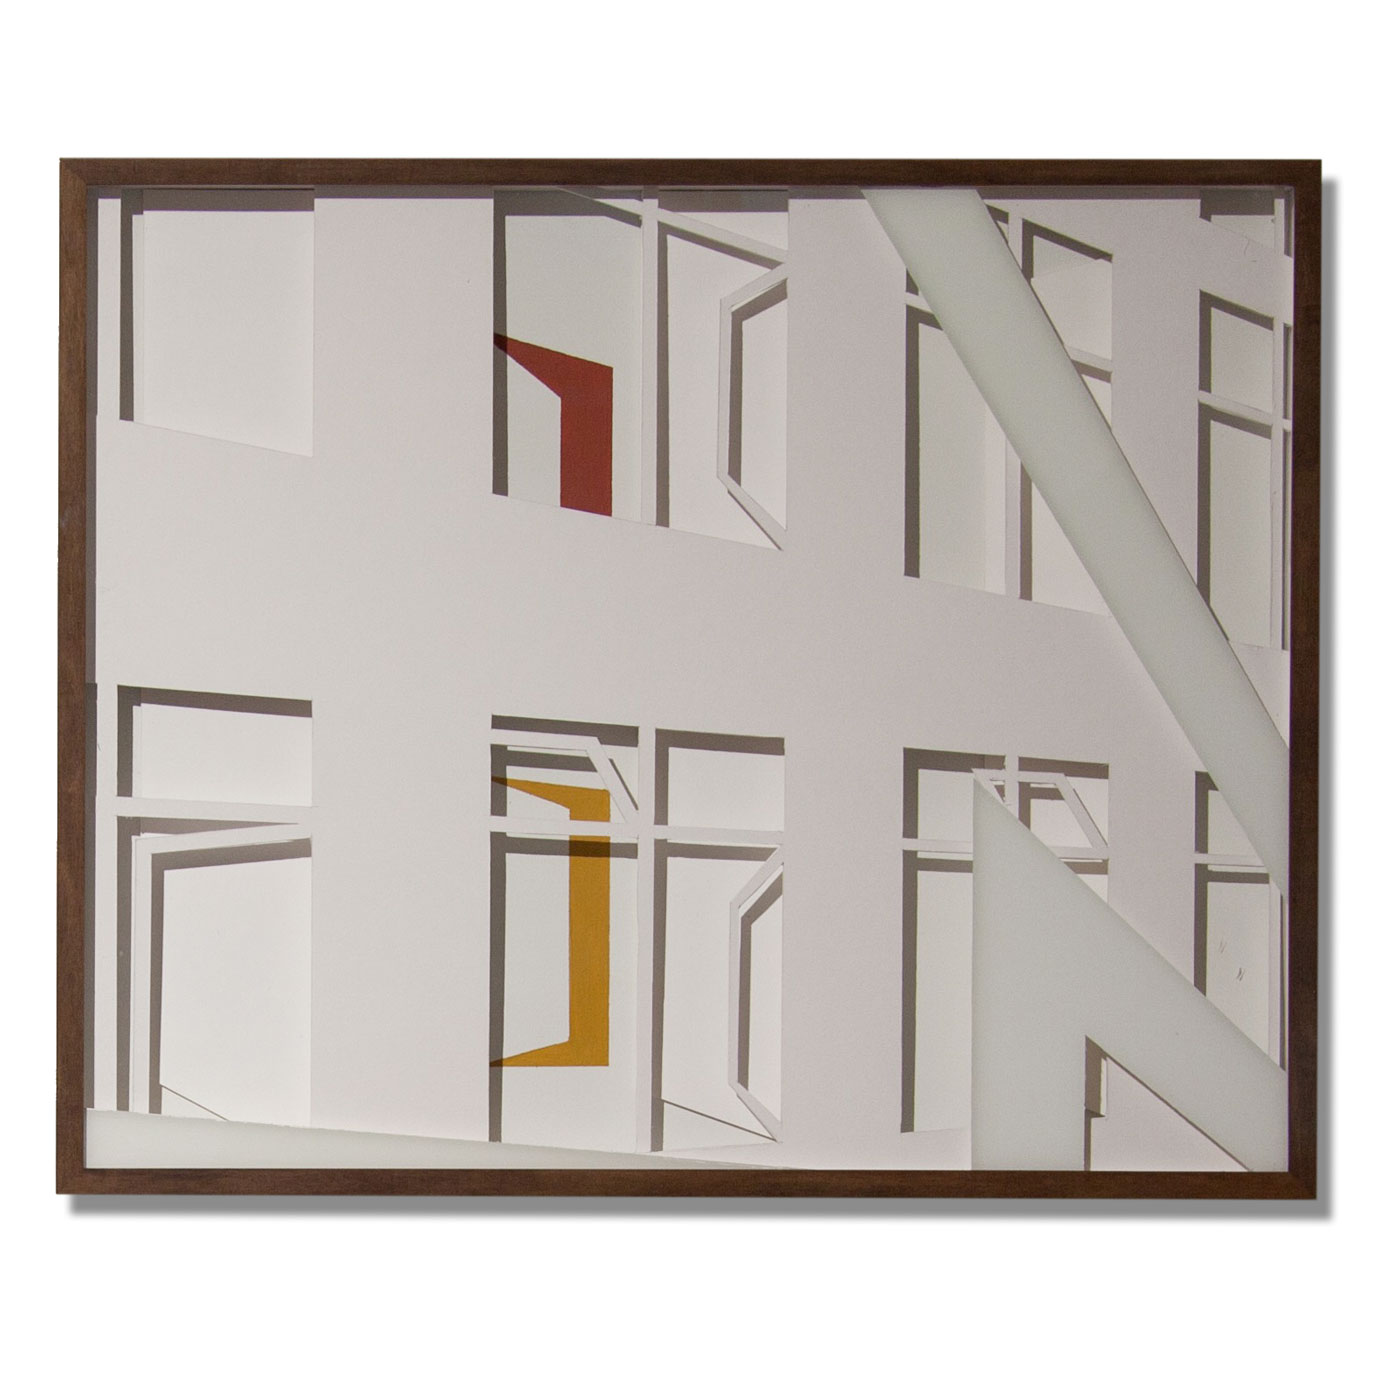 VASISTATS II, © 2015, cardboard and acrylic paint behind glass, each 64 x 53 x 4.5 cm